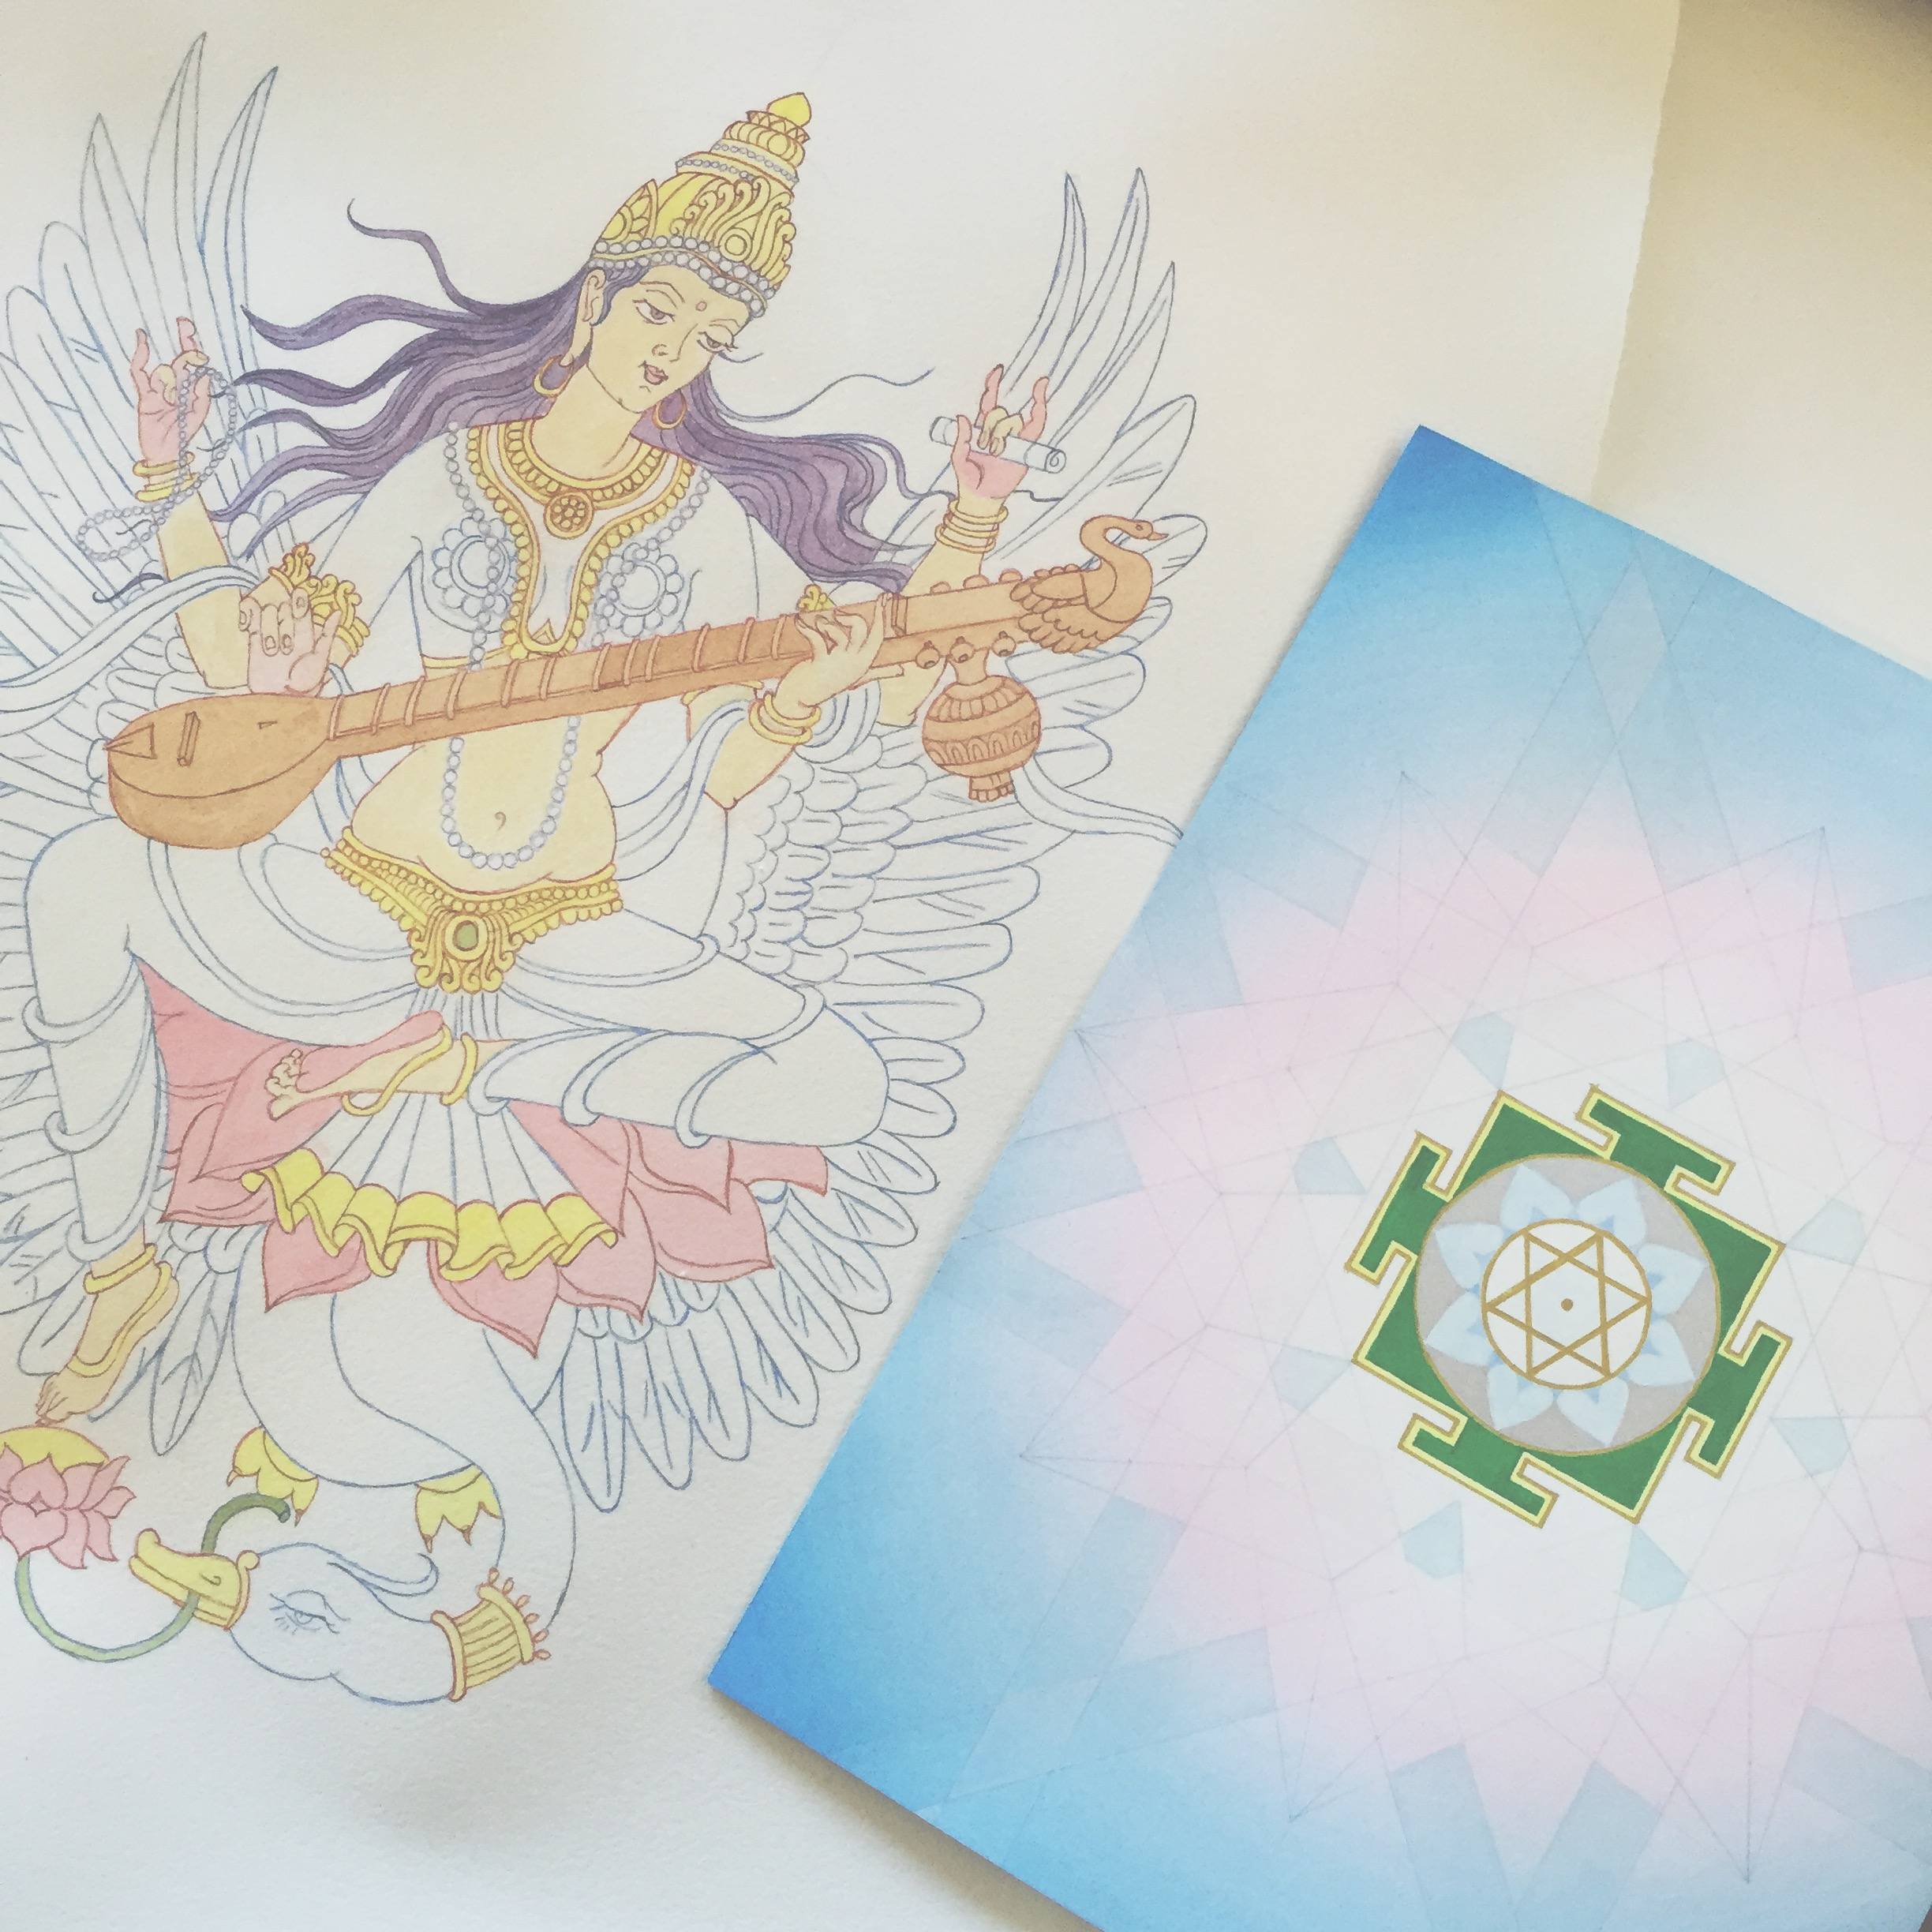 Saraswati and her yantra cultivates beauty knowledge and the arts  #saraswati   #watercolor   #goddess